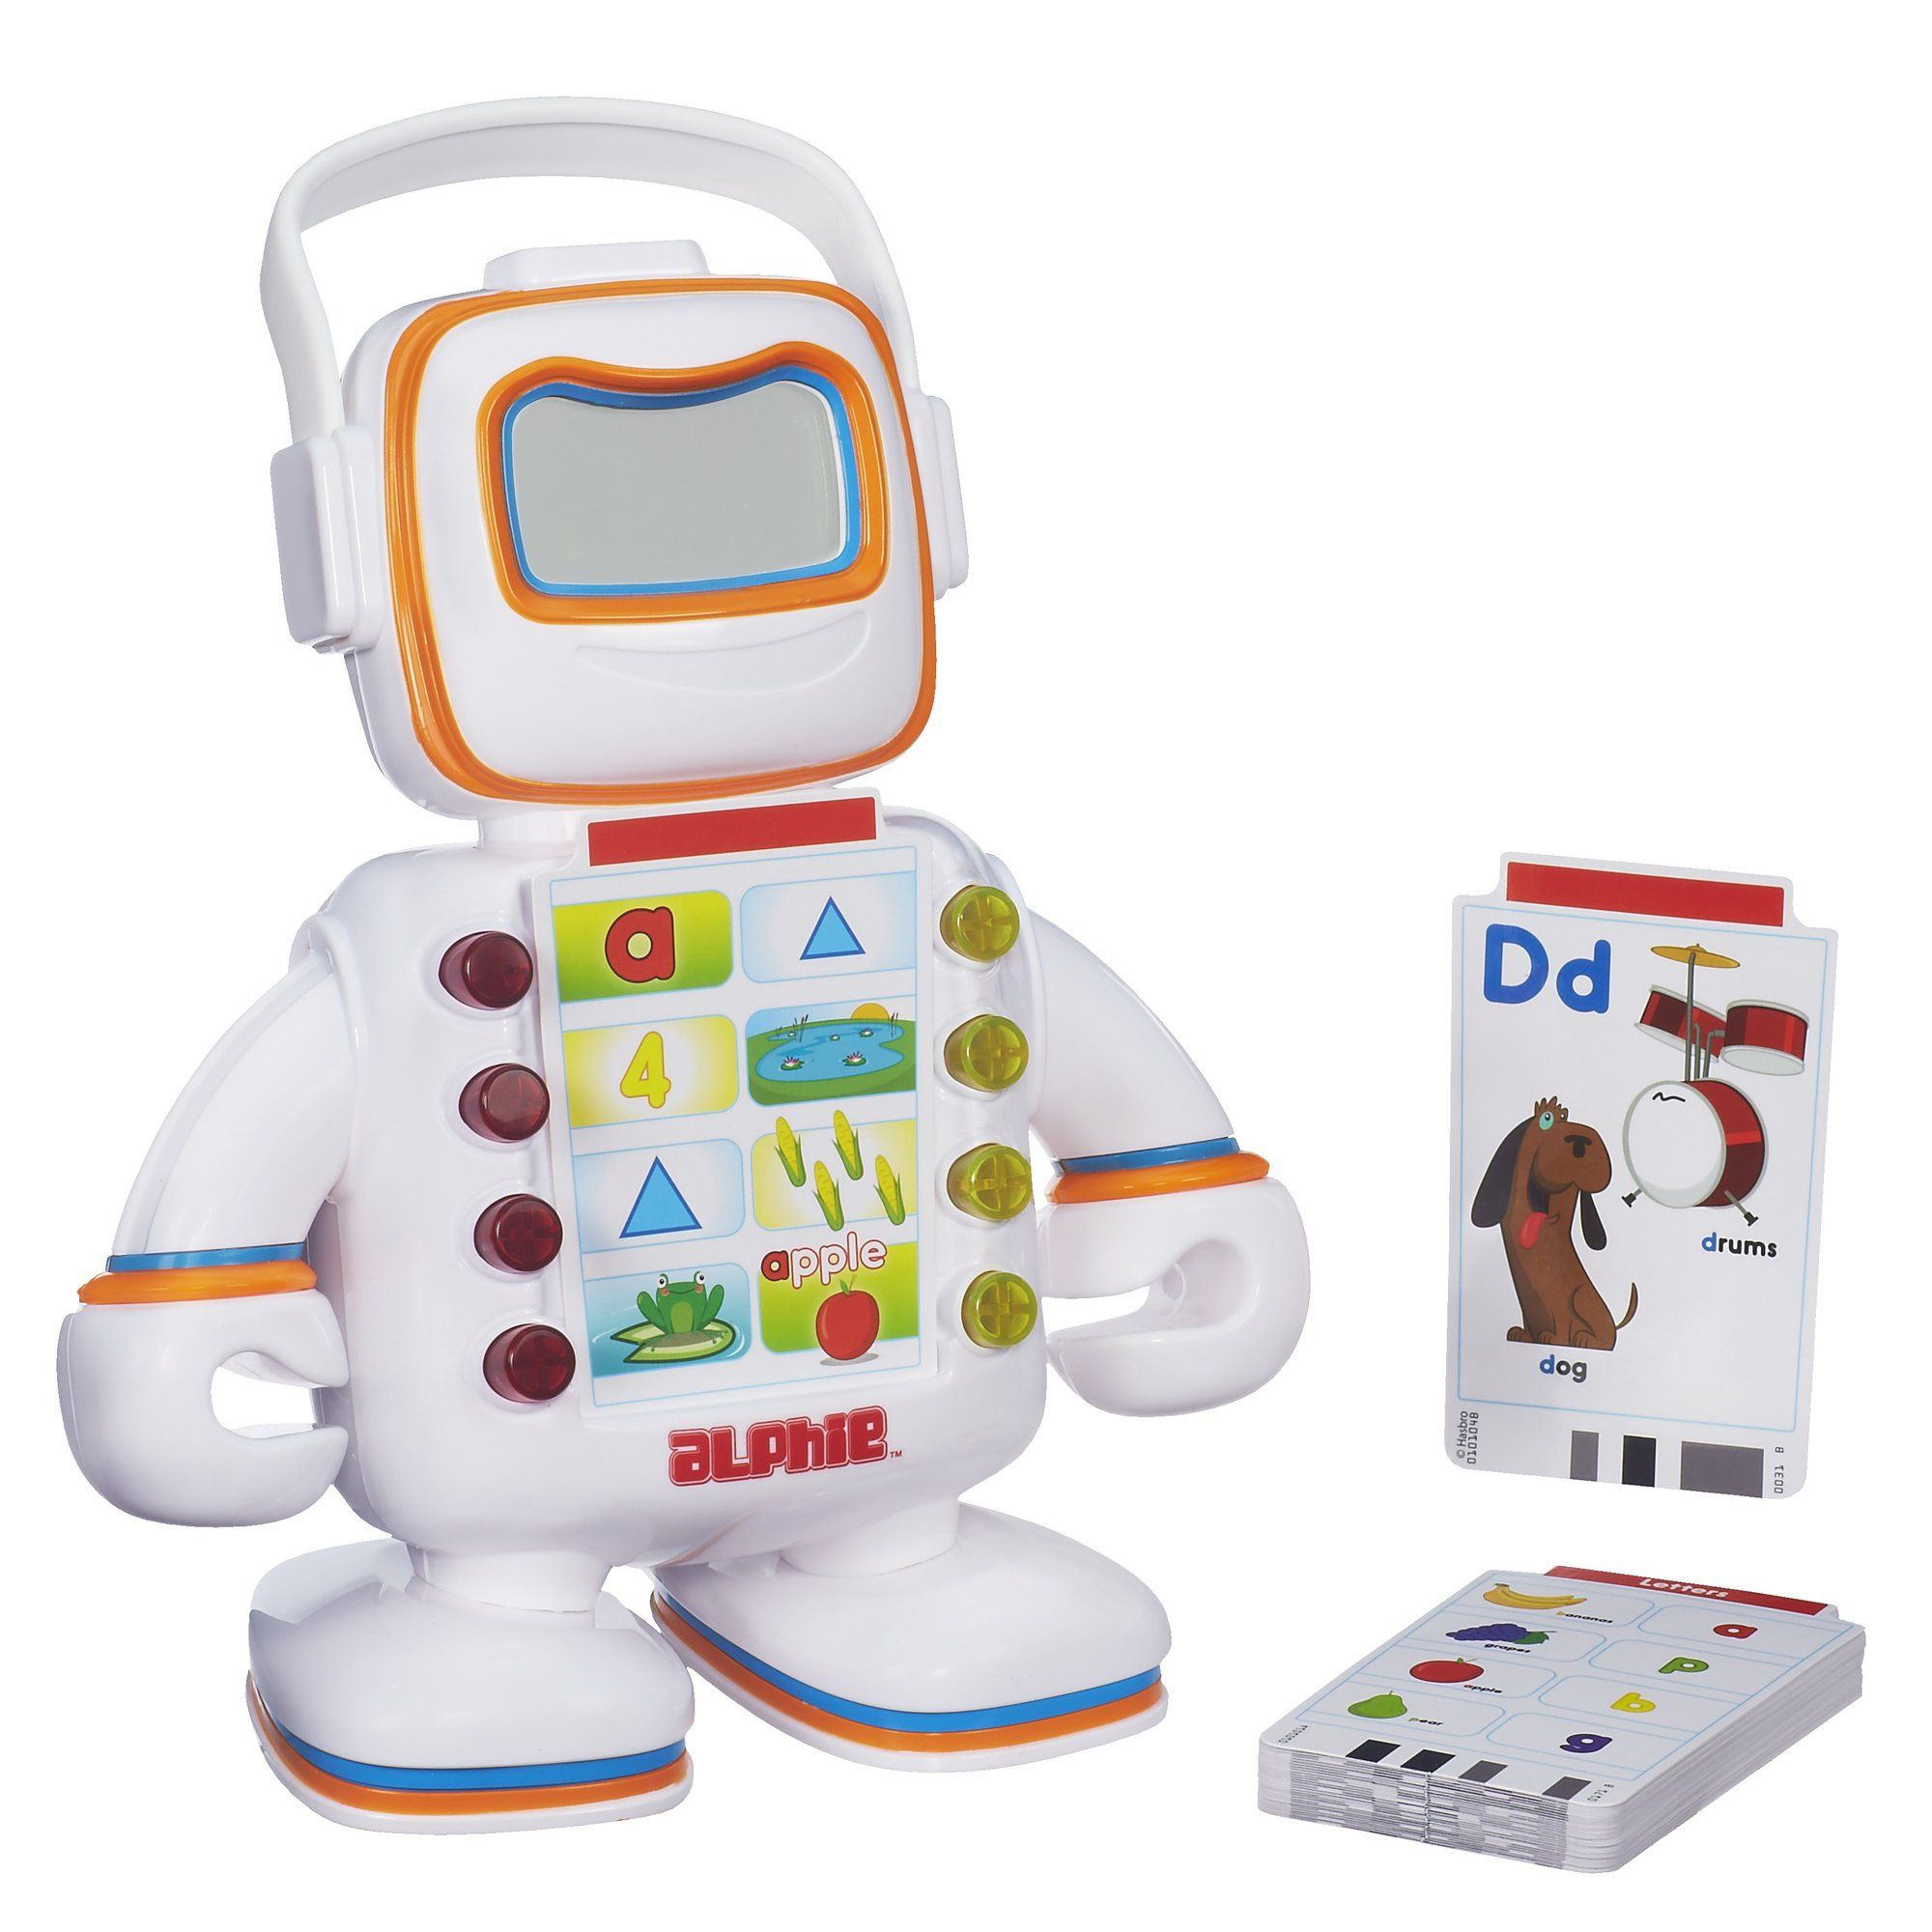 Best 4 Toy Learning Robots for Preschoolers